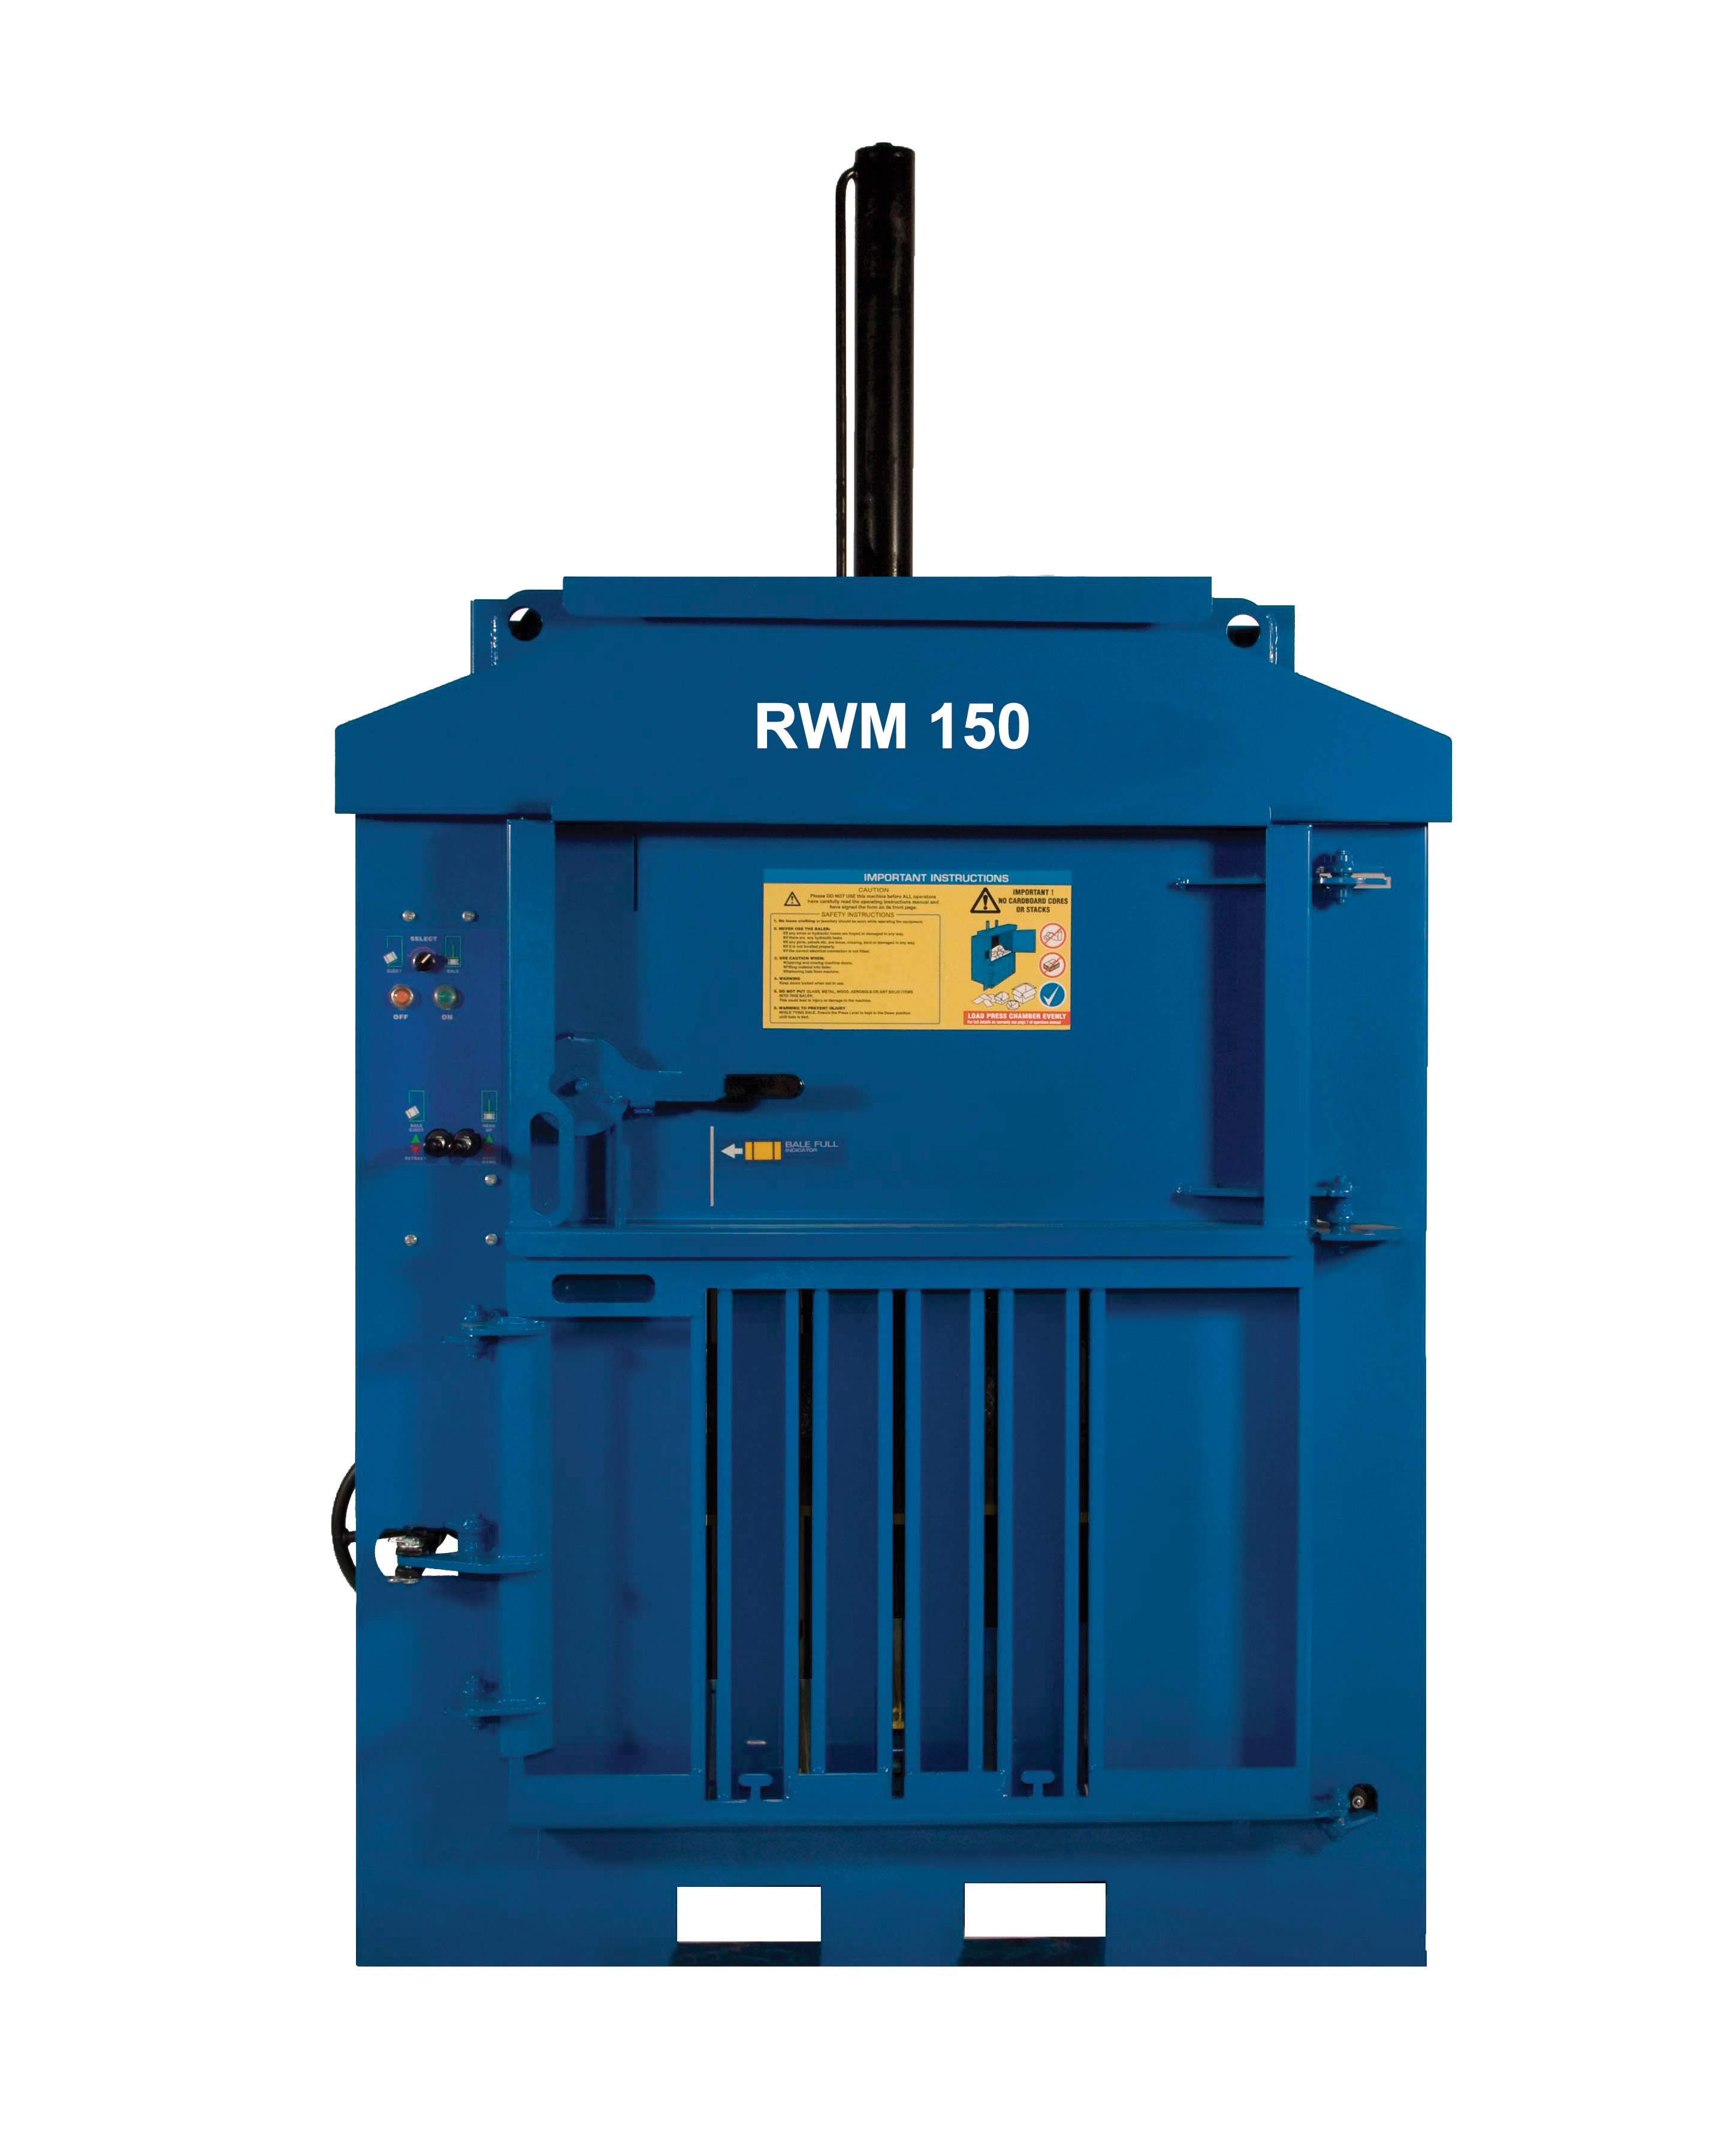 Machine of the month – June – RWM 150